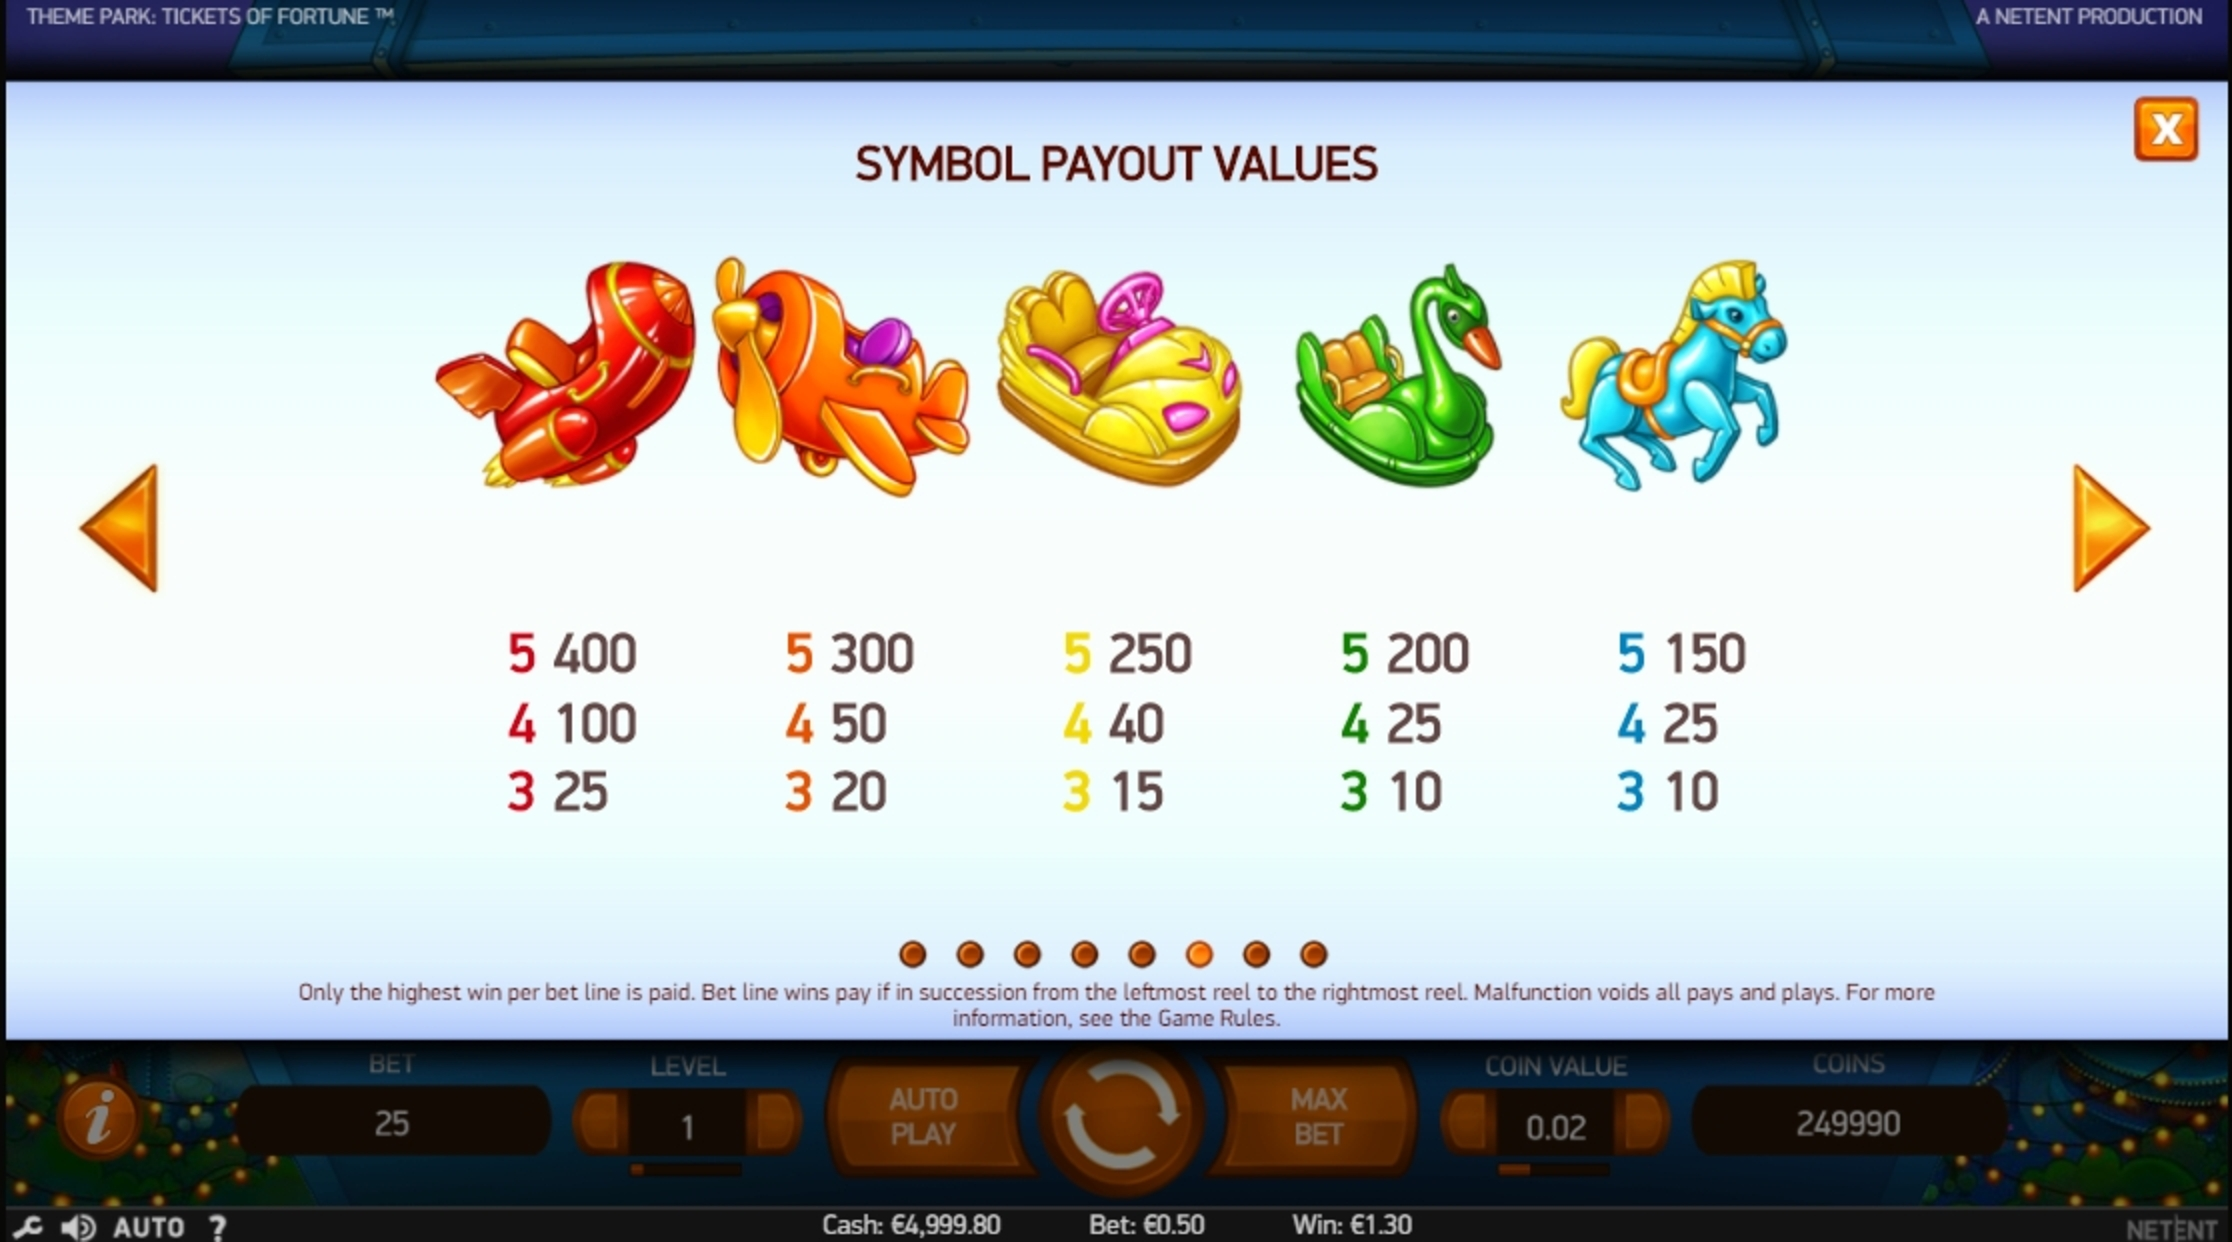 Info of Theme Park: Tickets of Fortune Slot Game by NetEnt